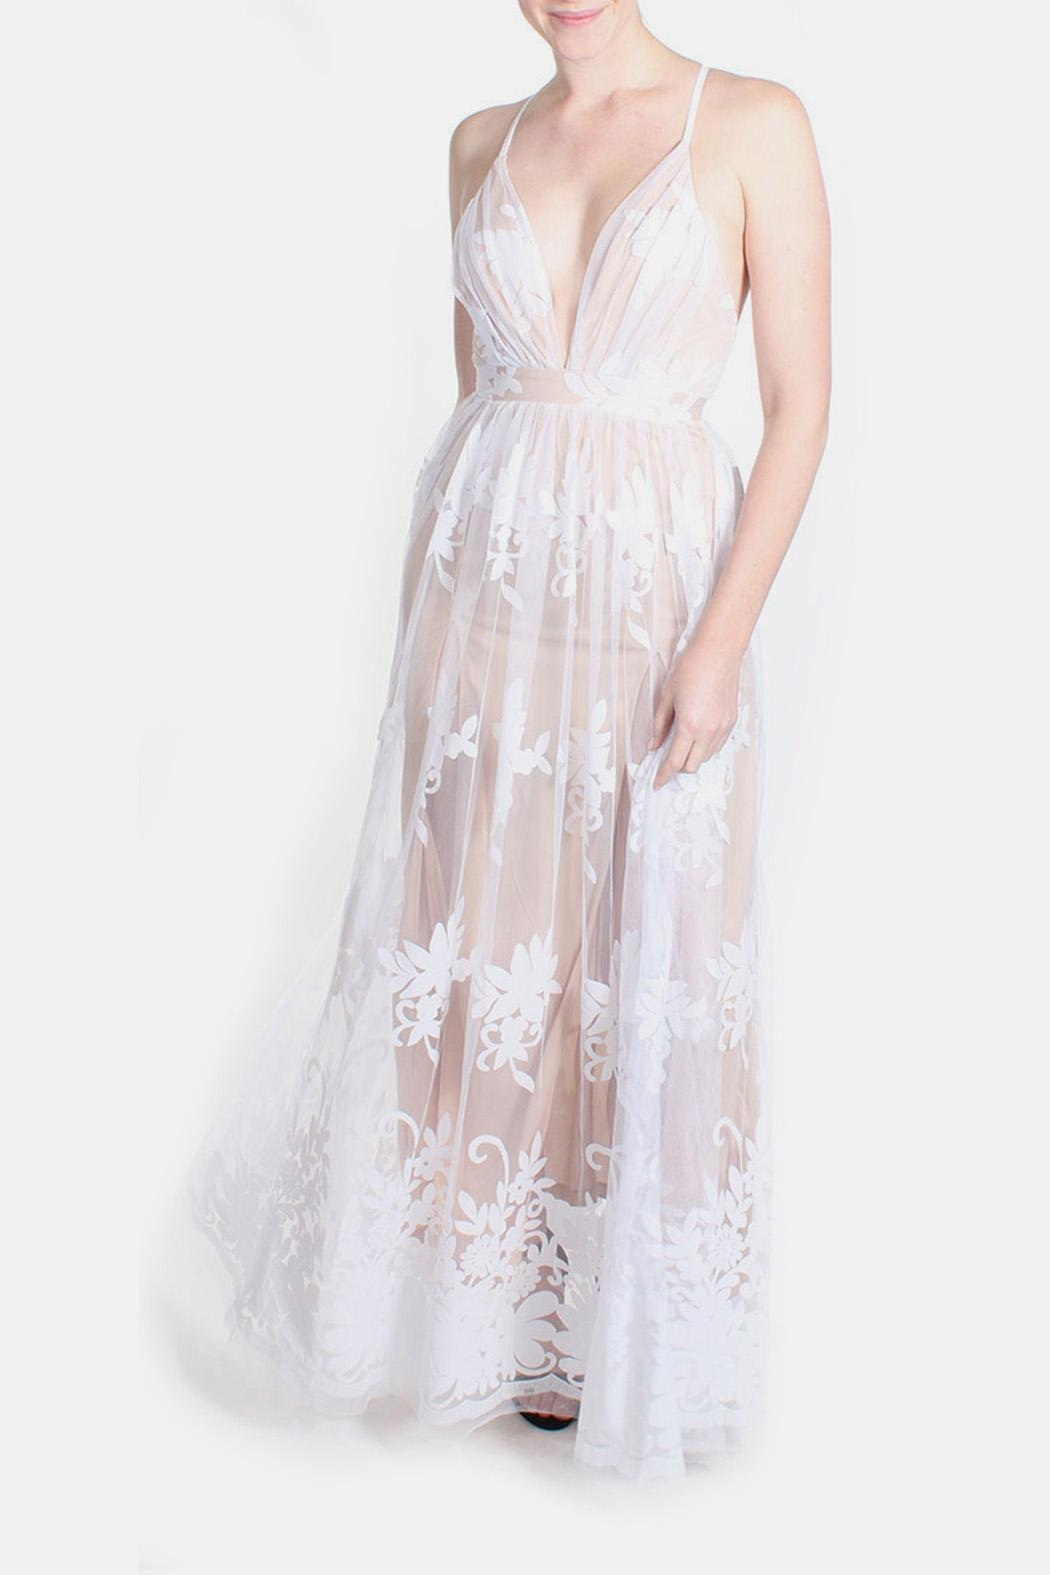 luxxel Nude Monochrome Floral Gown - Side Cropped Image